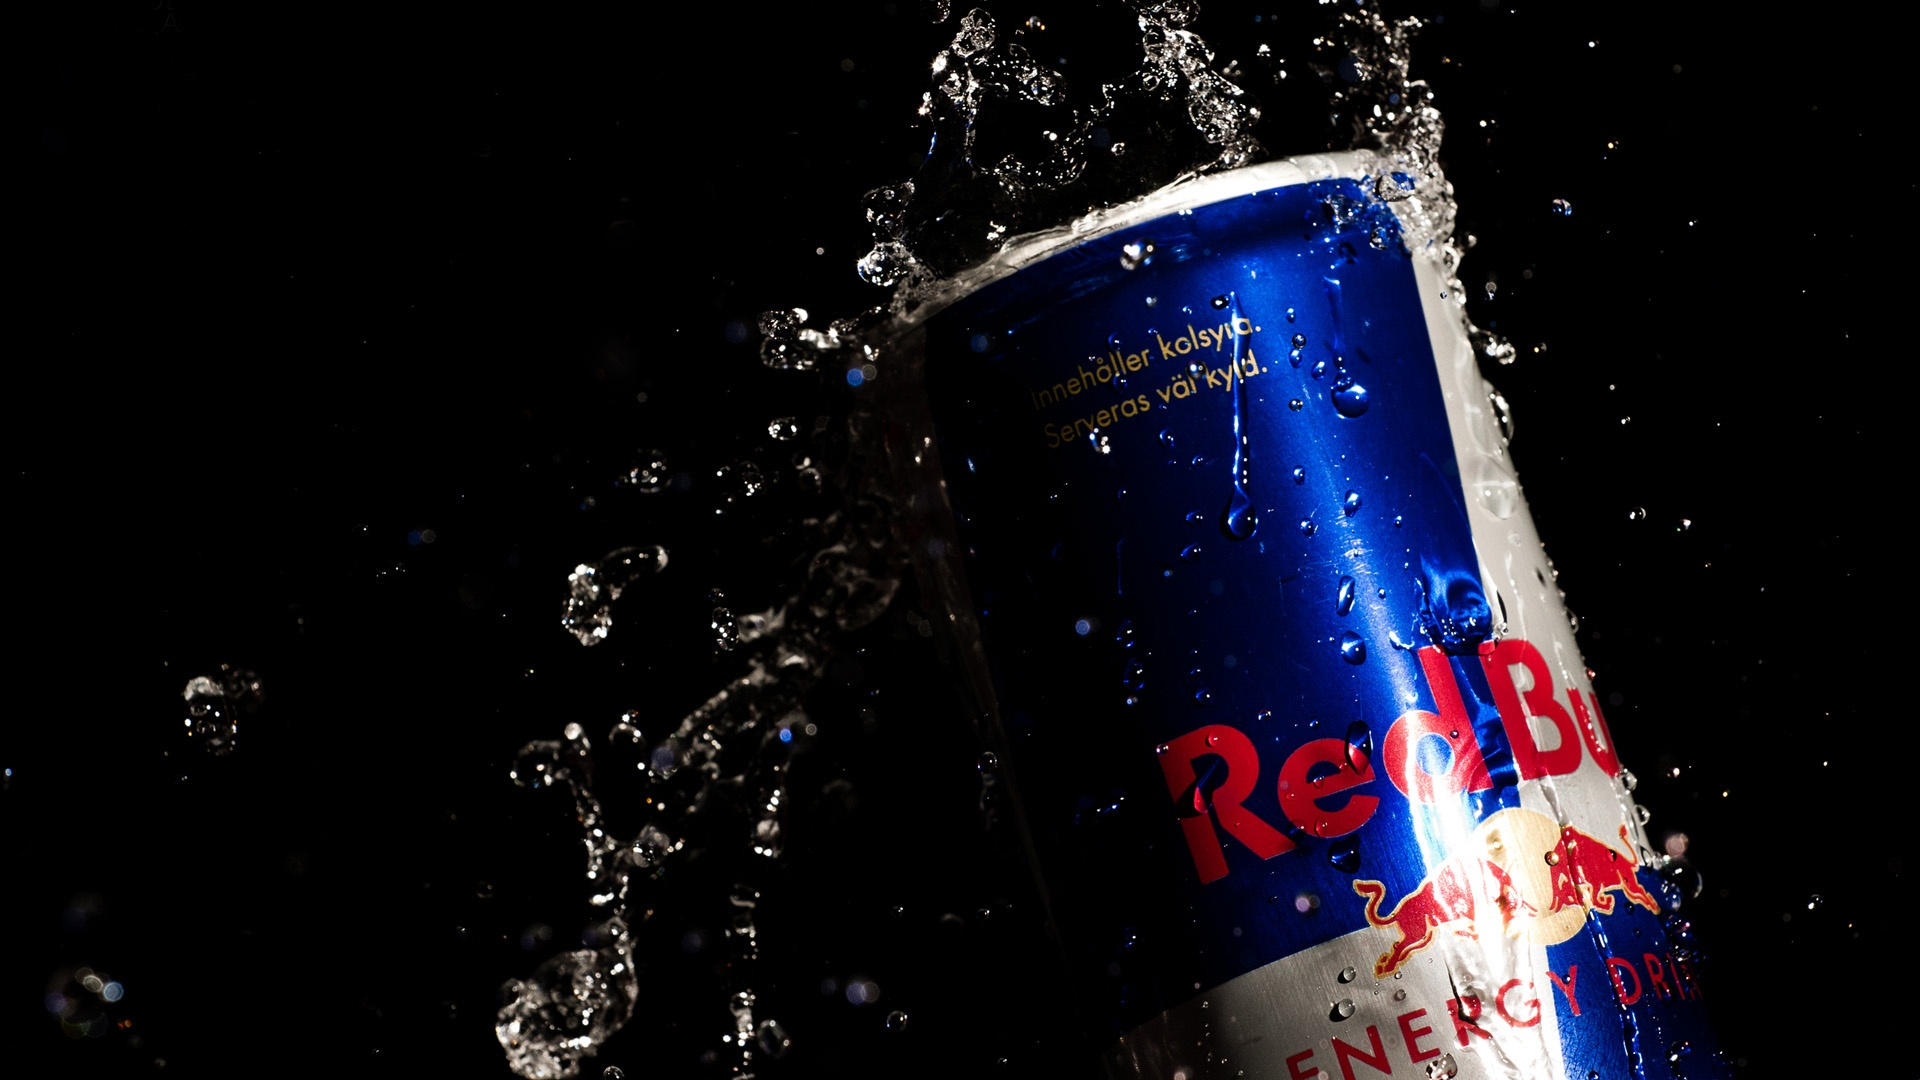 Red Bull Drink Desktop Wallpaper 60697 1920x1080 px HDWallSourcecom